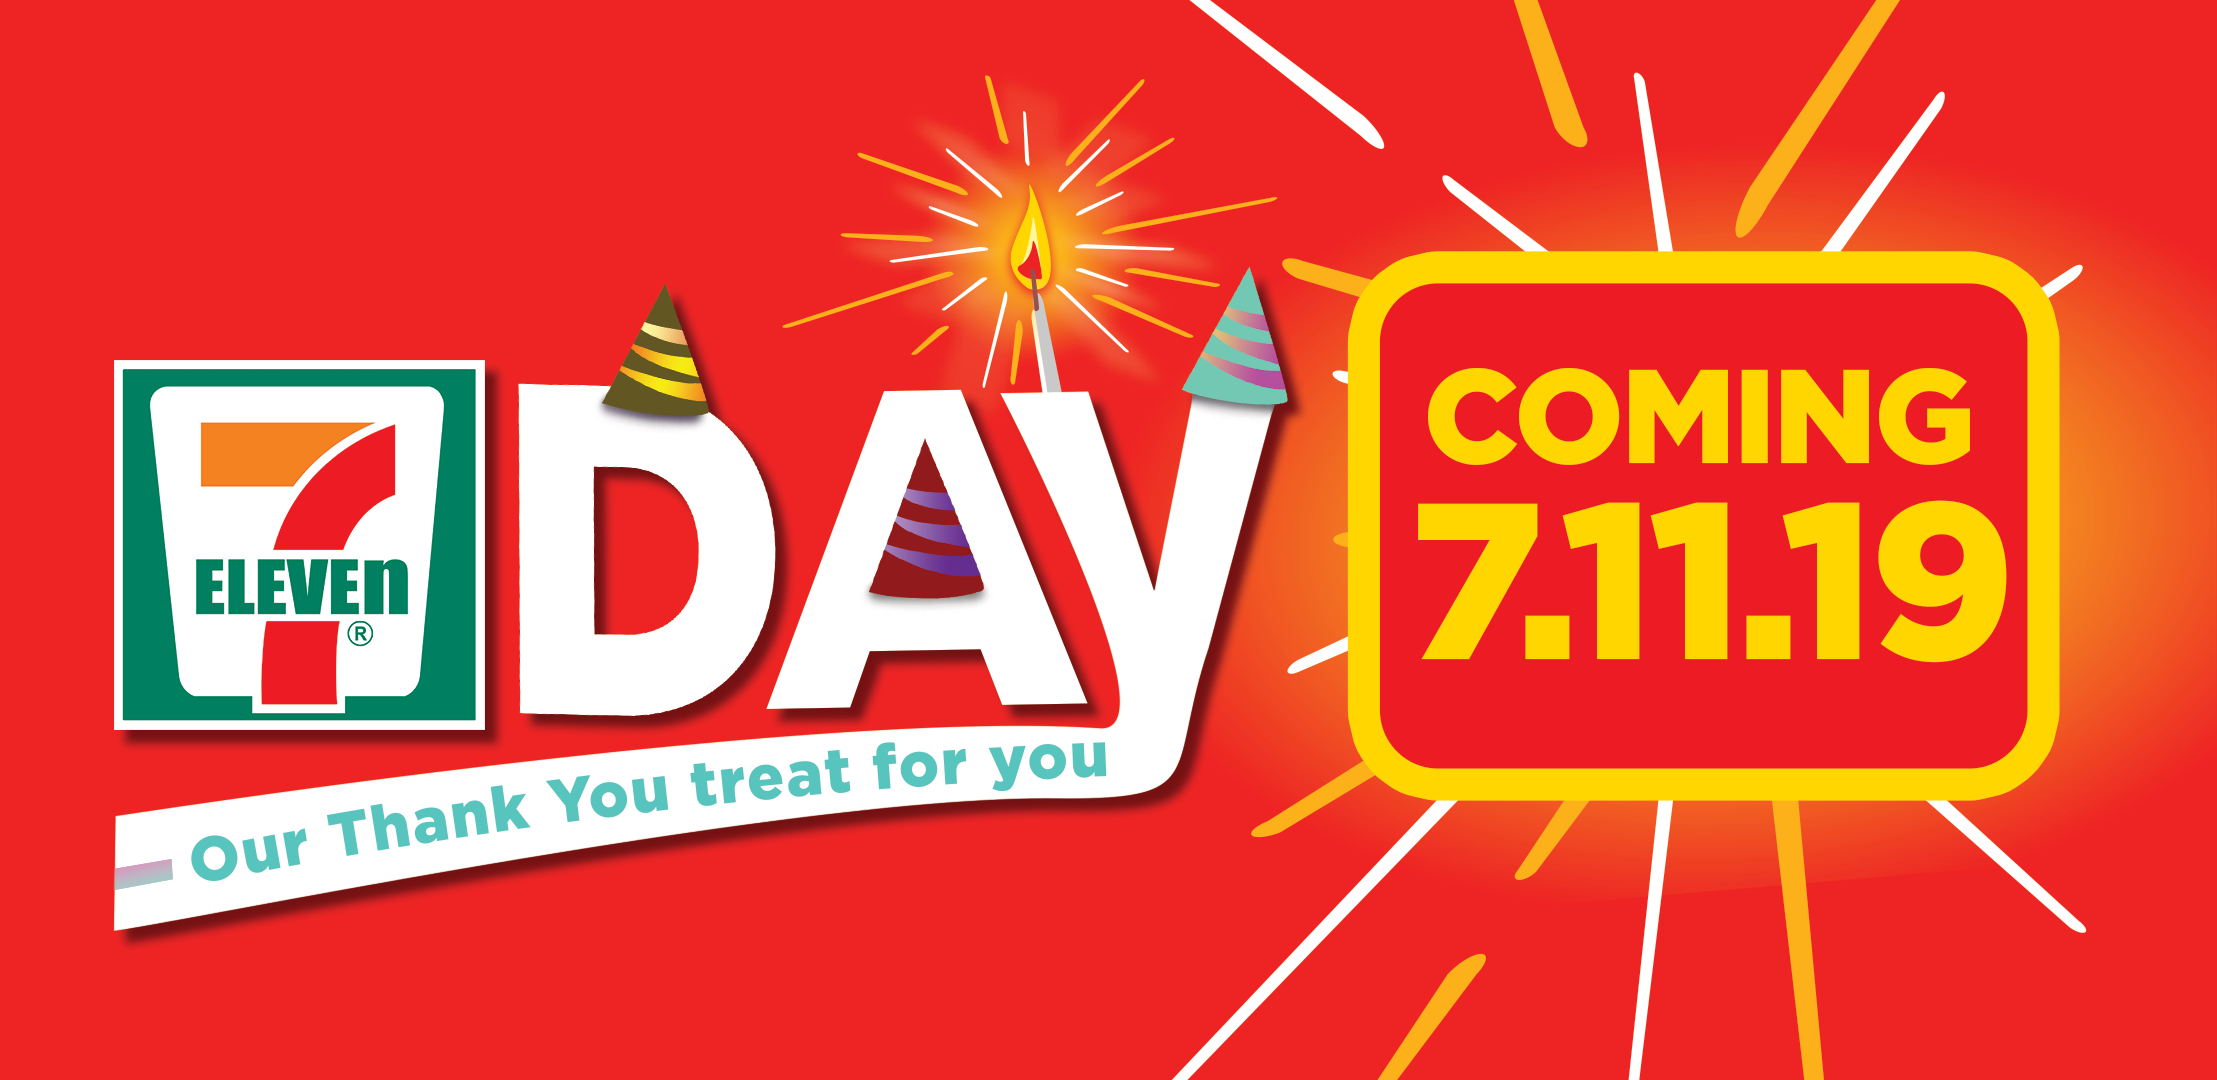 7 Eleven Day 07.11.19.png